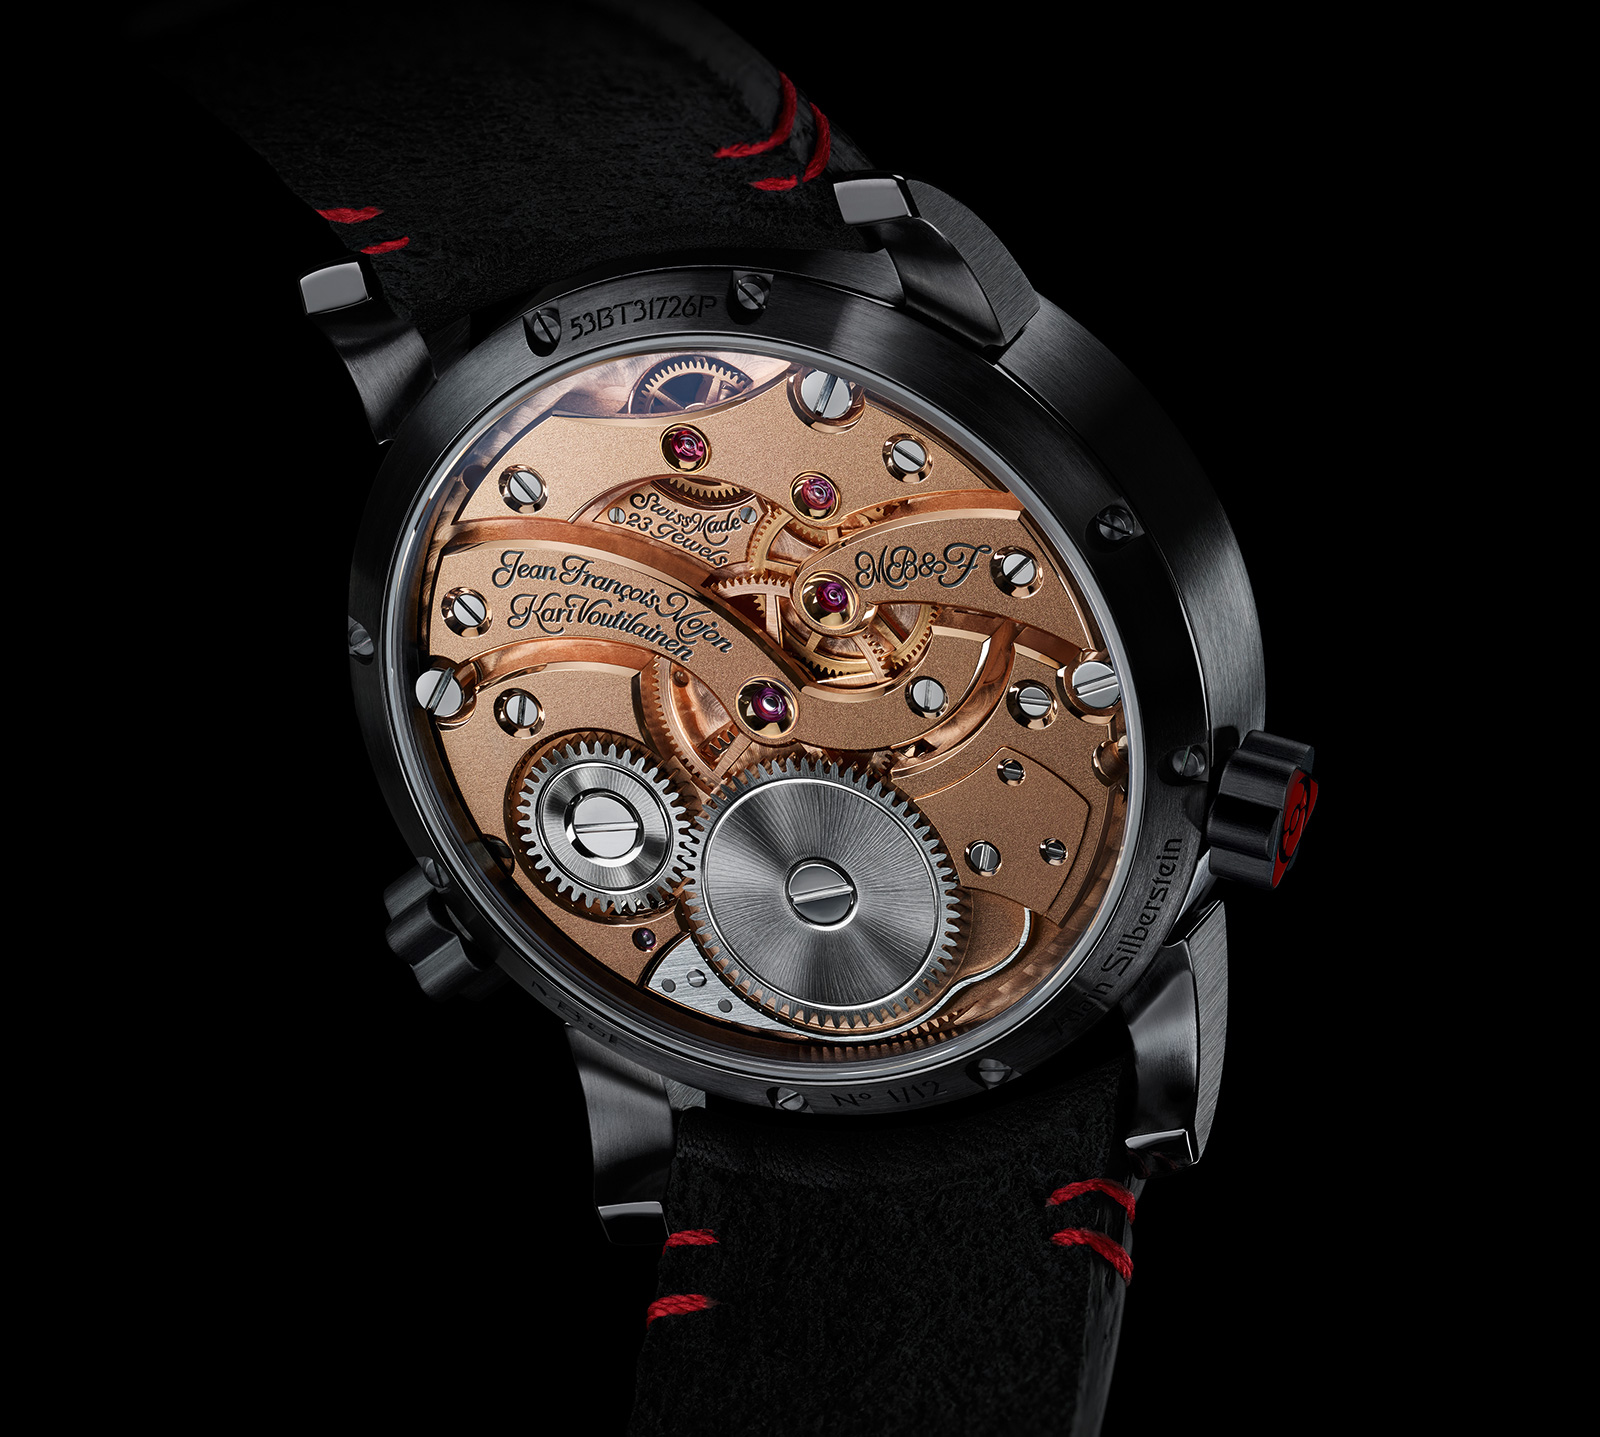 MB&F LM1 Silberstein 1